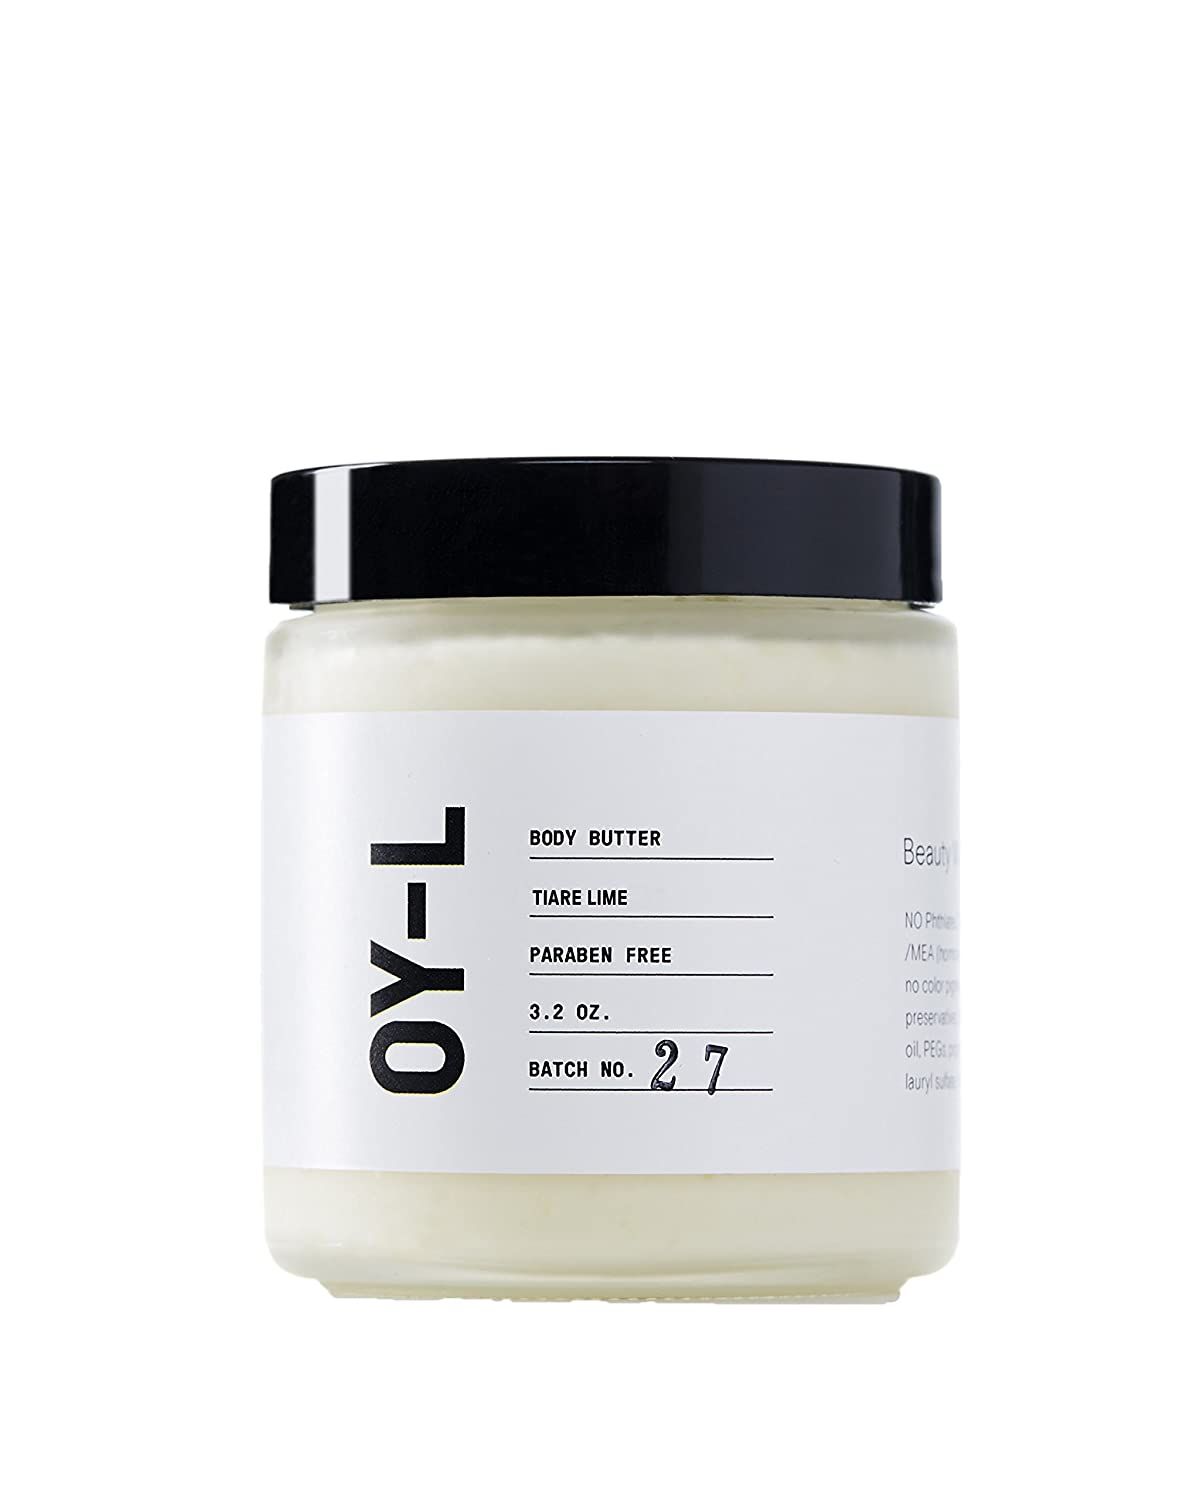 OY-L Body Butter (Tiare Lime)